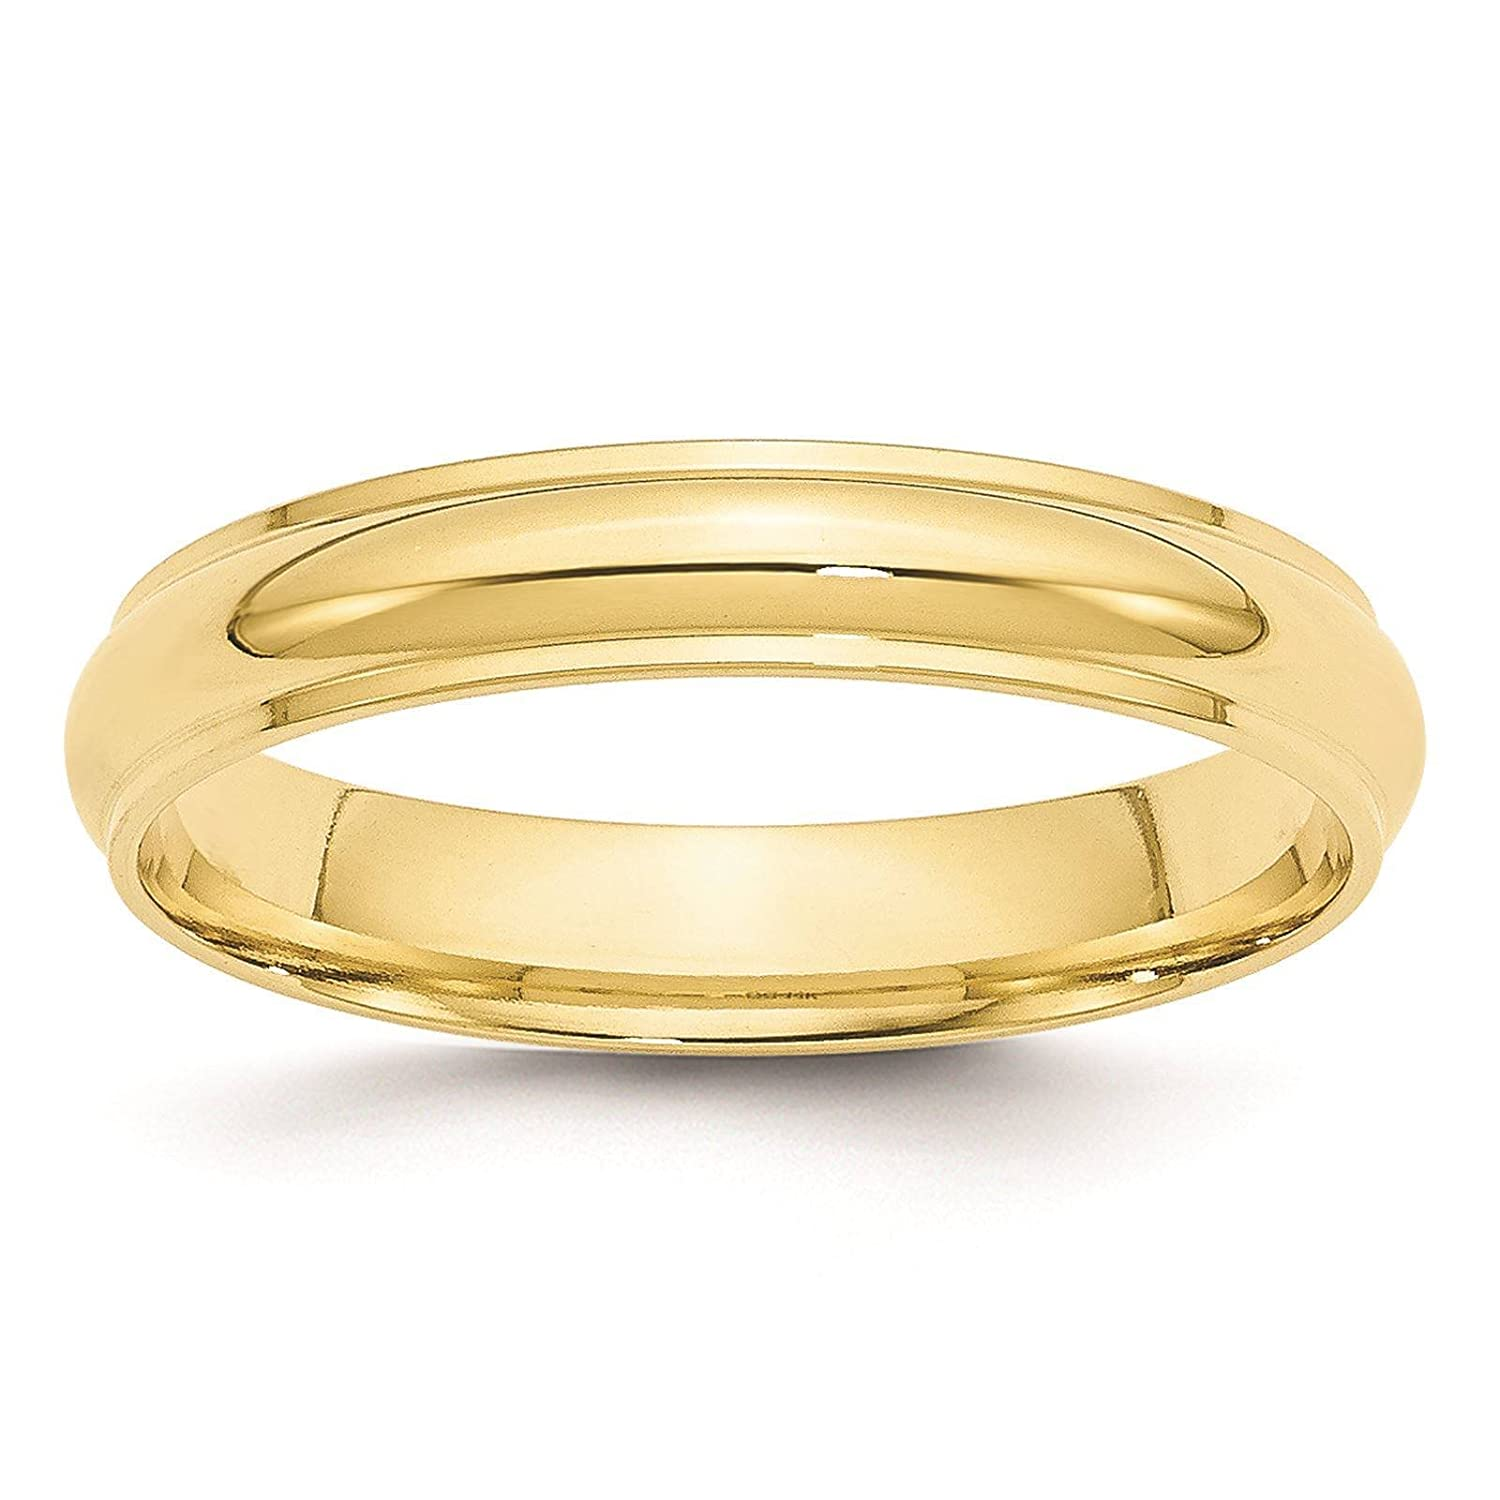 Full /& Half Sizes 10k Yellow Gold 4mm Half Round with Edge Wedding Ring Band Size 4-14